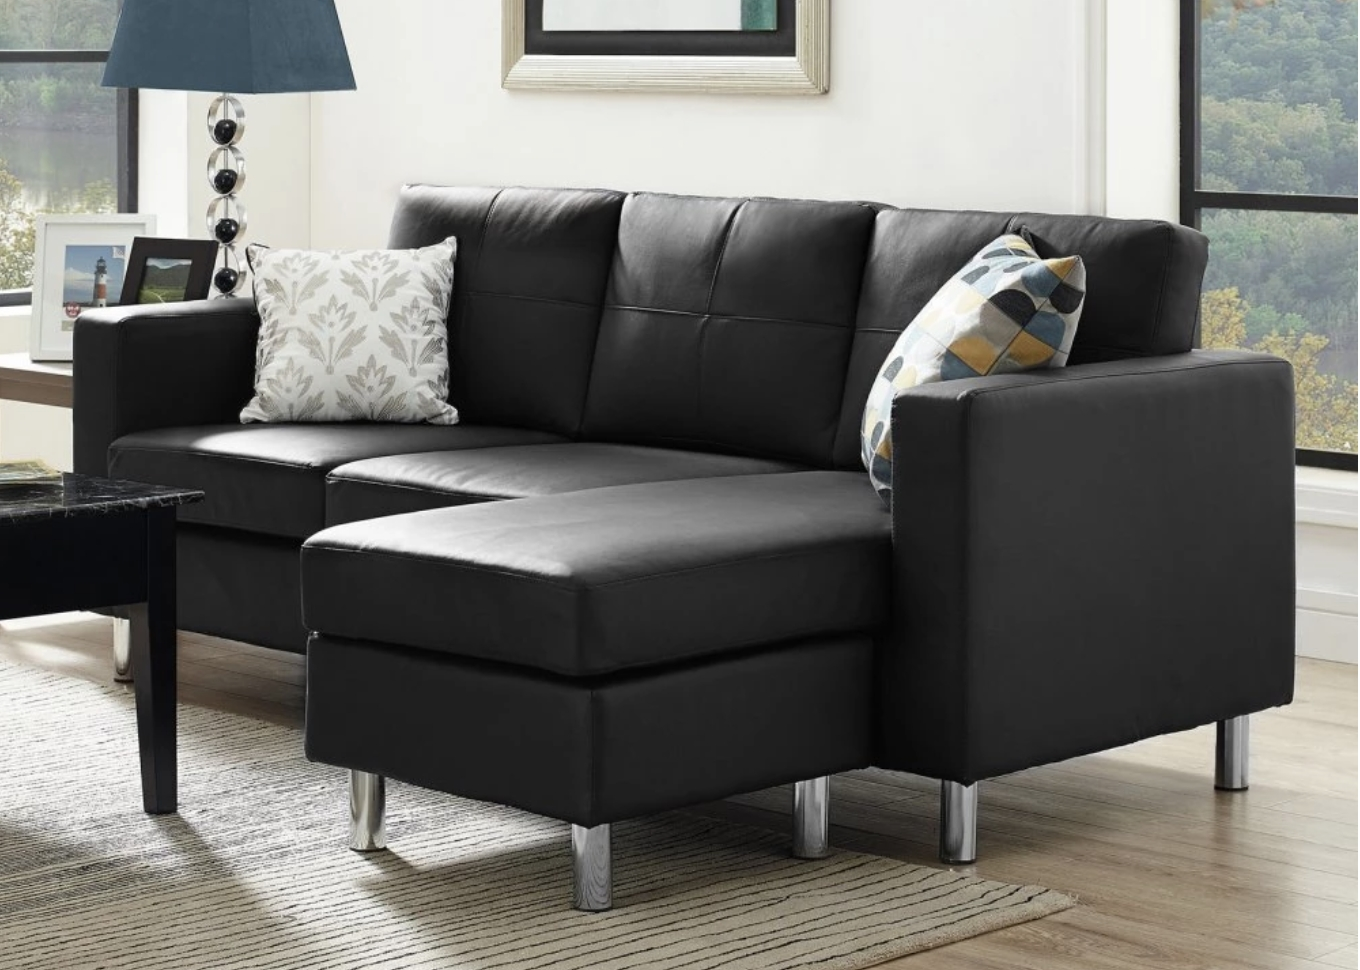 2017 Sectional Sofas For Small Spaces Regarding 75 Modern Sectional Sofas For Small Spaces (2018) (View 2 of 15)